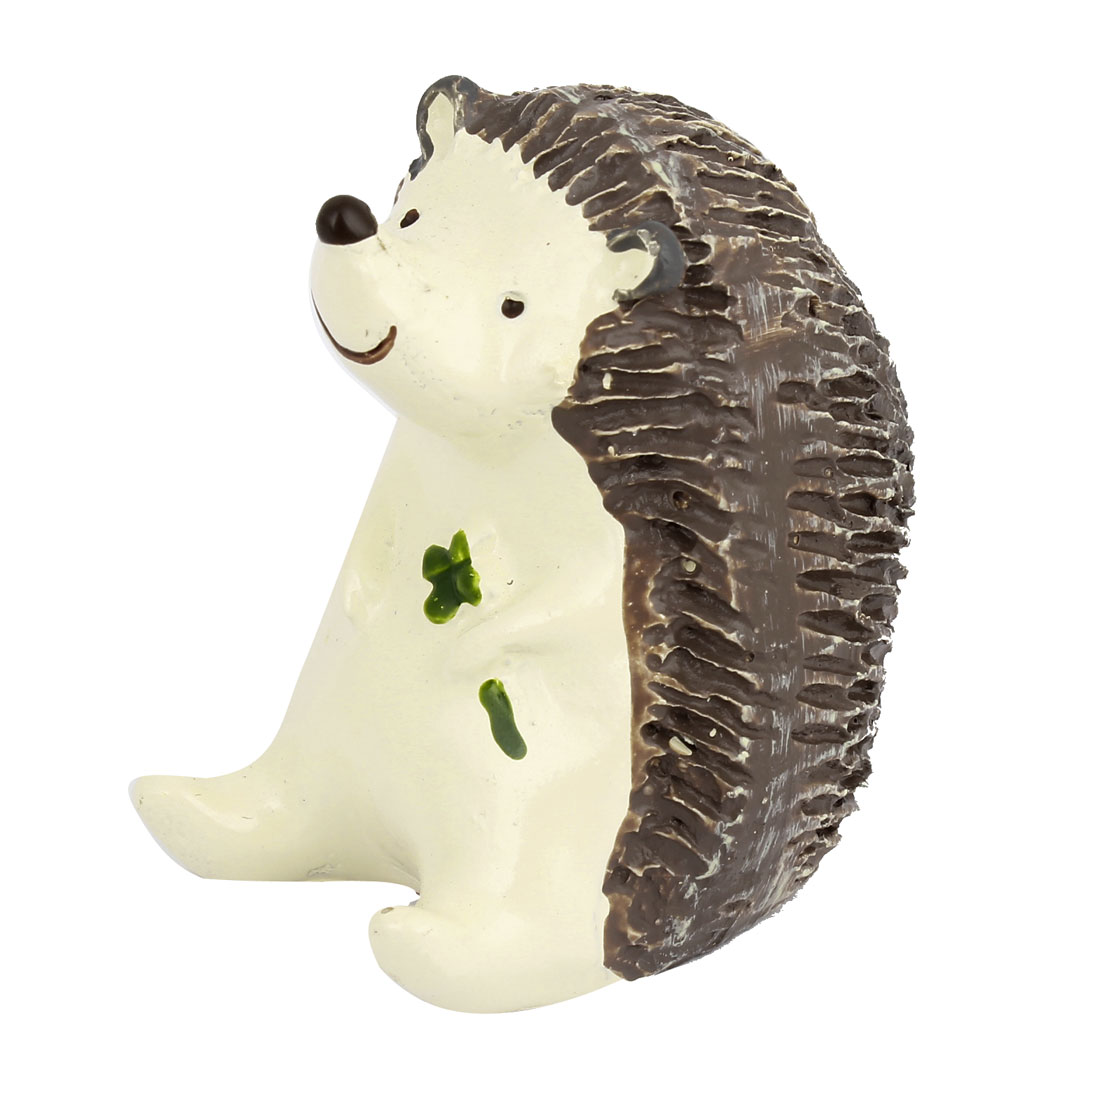 Handmade Craft Hedgehog Ornament Chocolate Color Off White